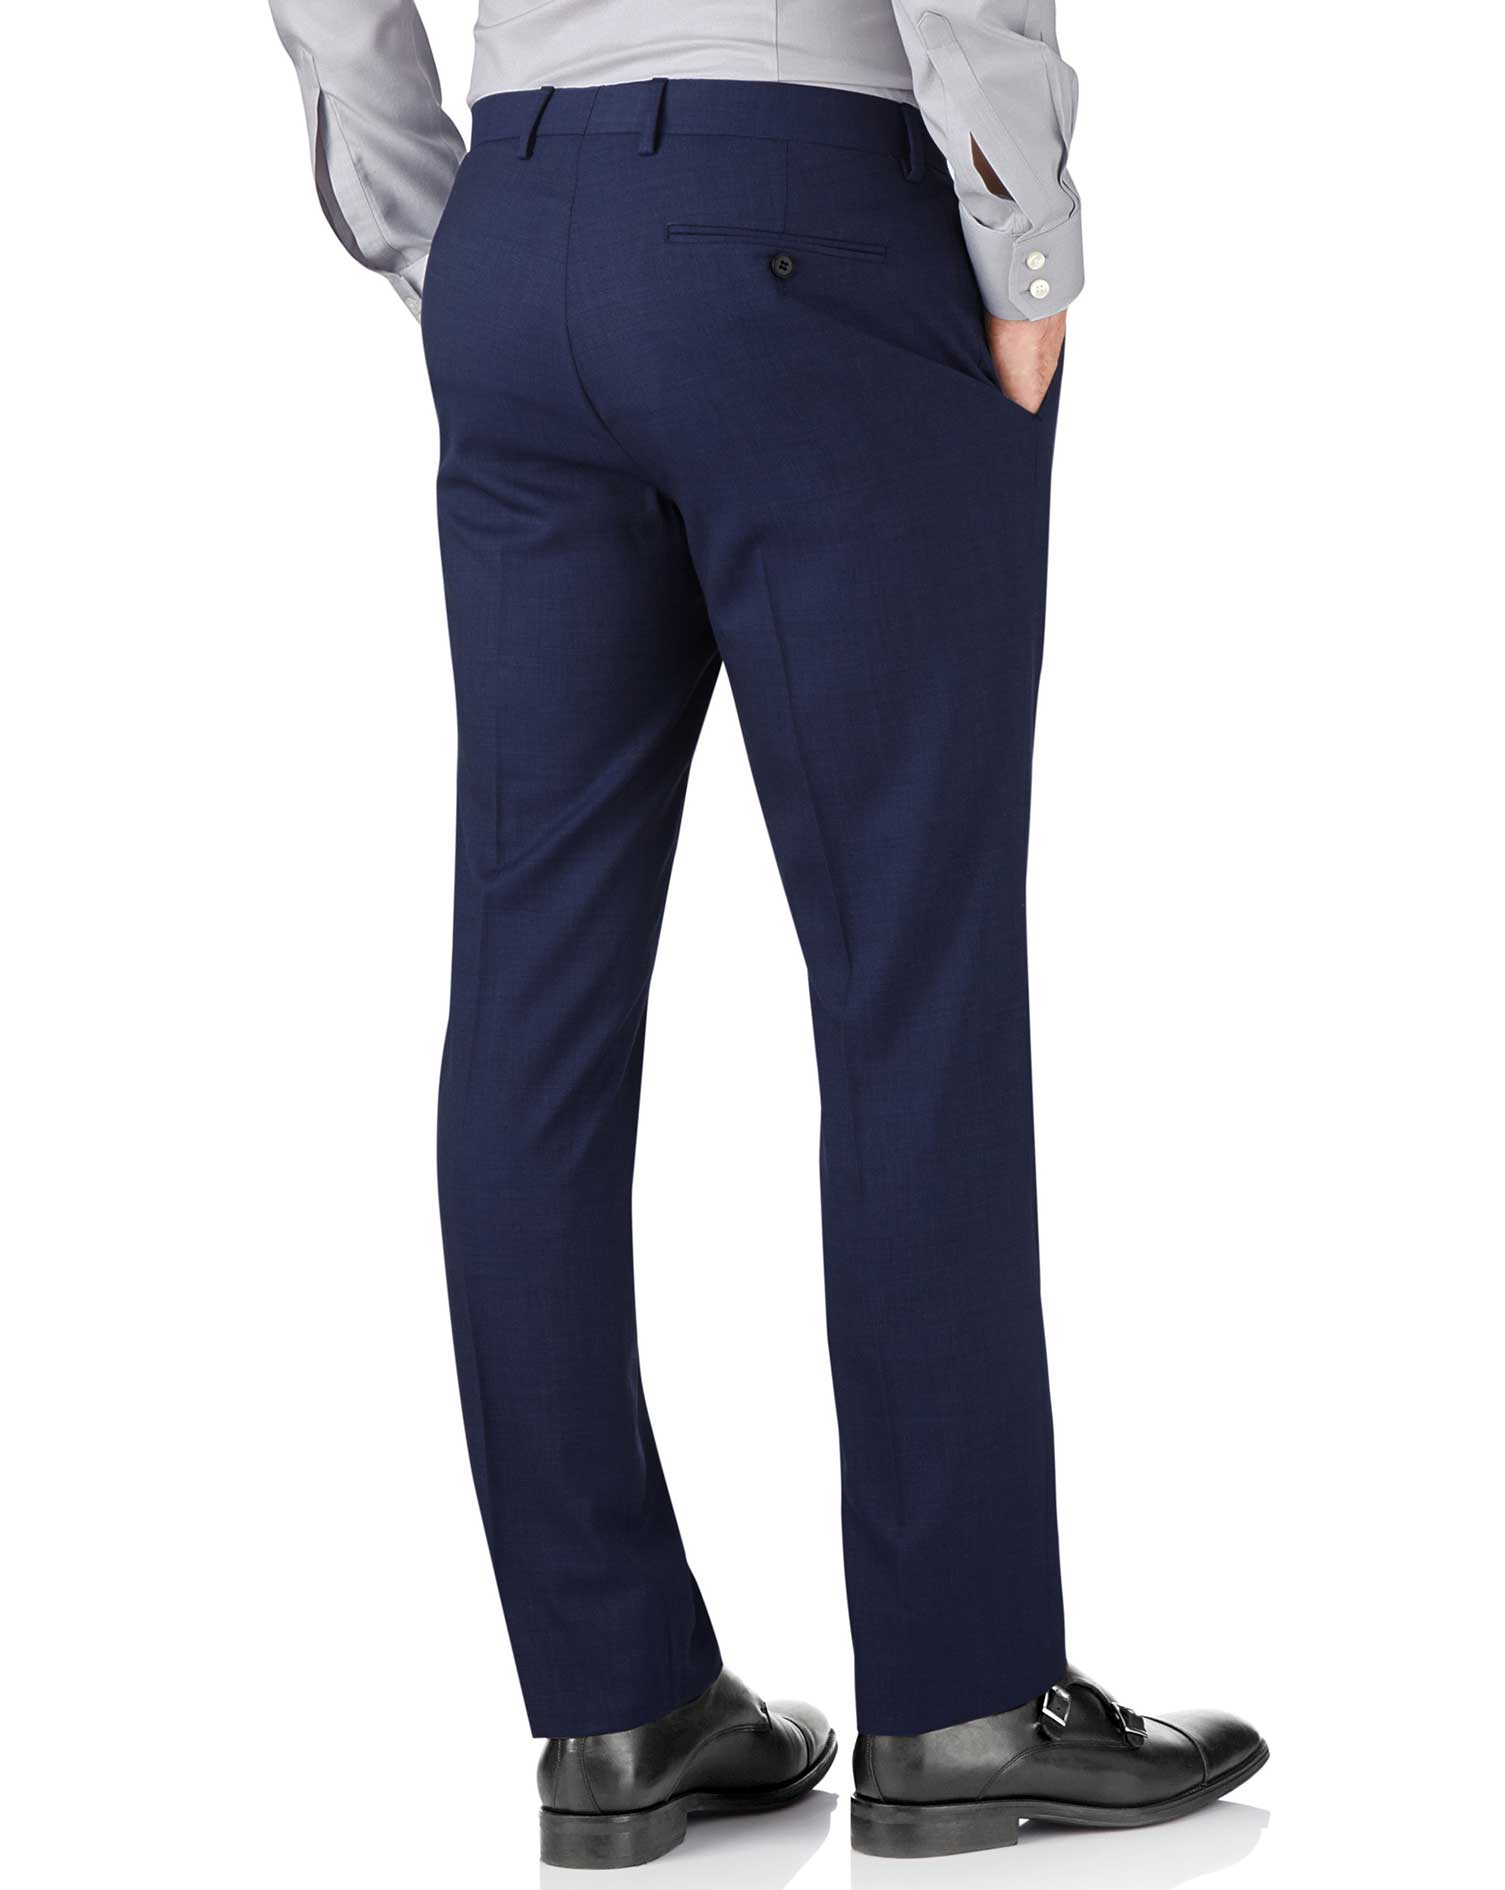 Indigo slim fit end-on-end business suit trouser